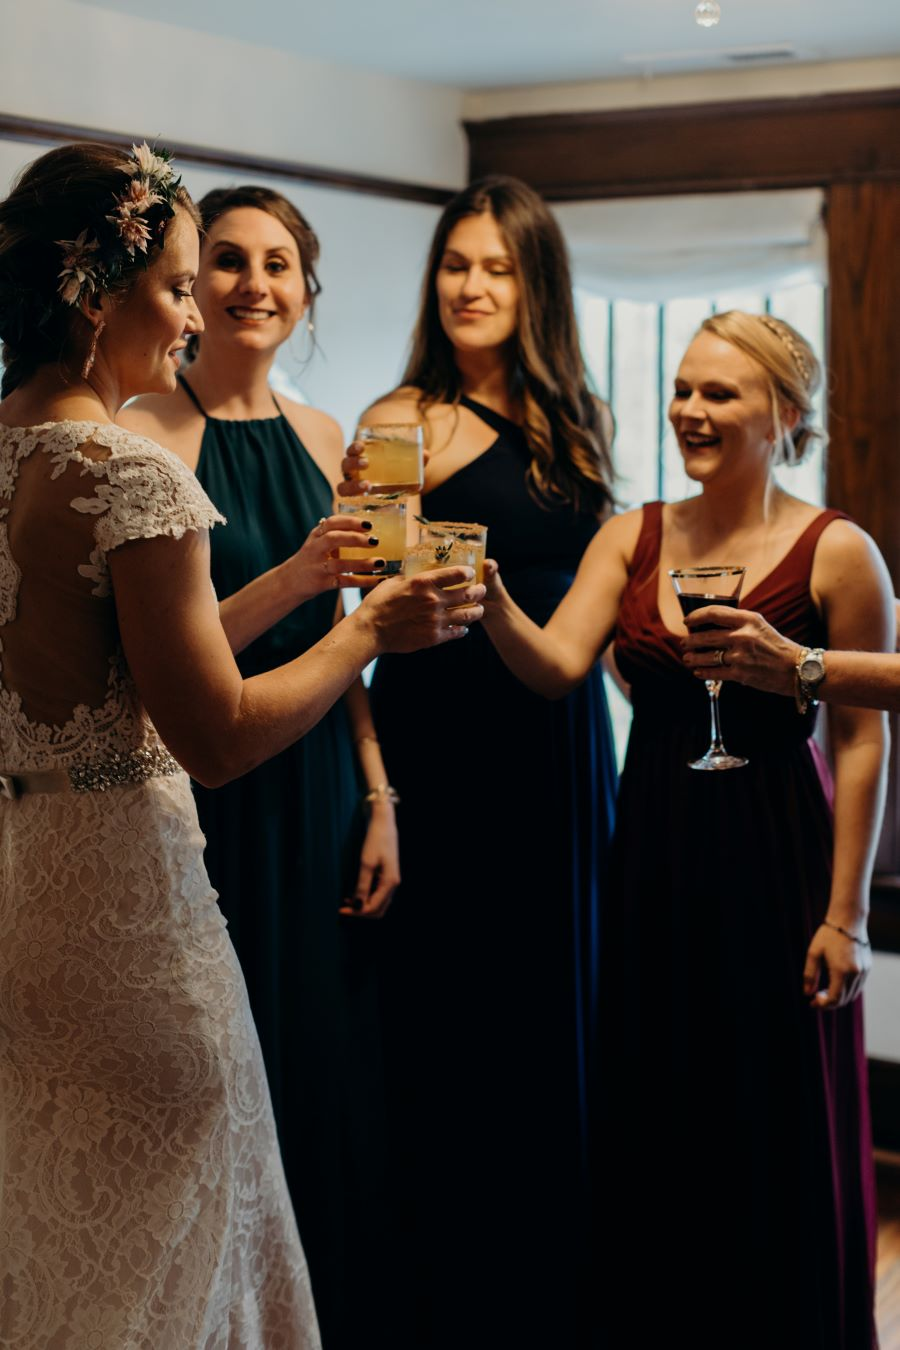 Bridal party cheersing in bridal suite before wedding / earthy / fall / October / burgundy